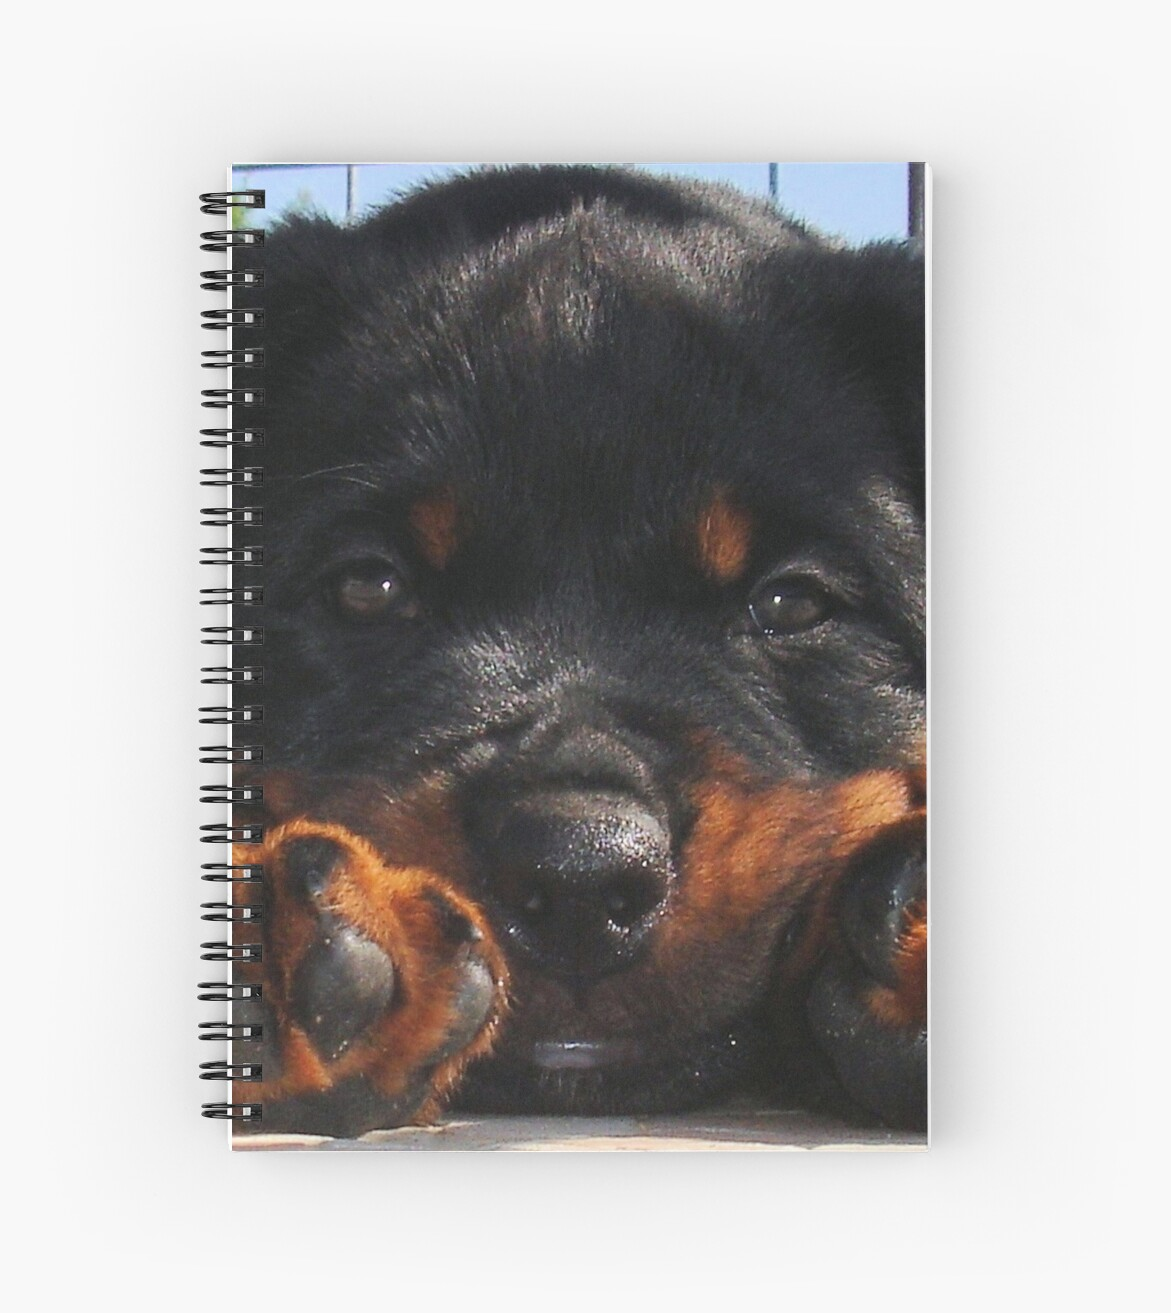 Cute Rottweiler Puppy Resting Head Between Paws by taiche